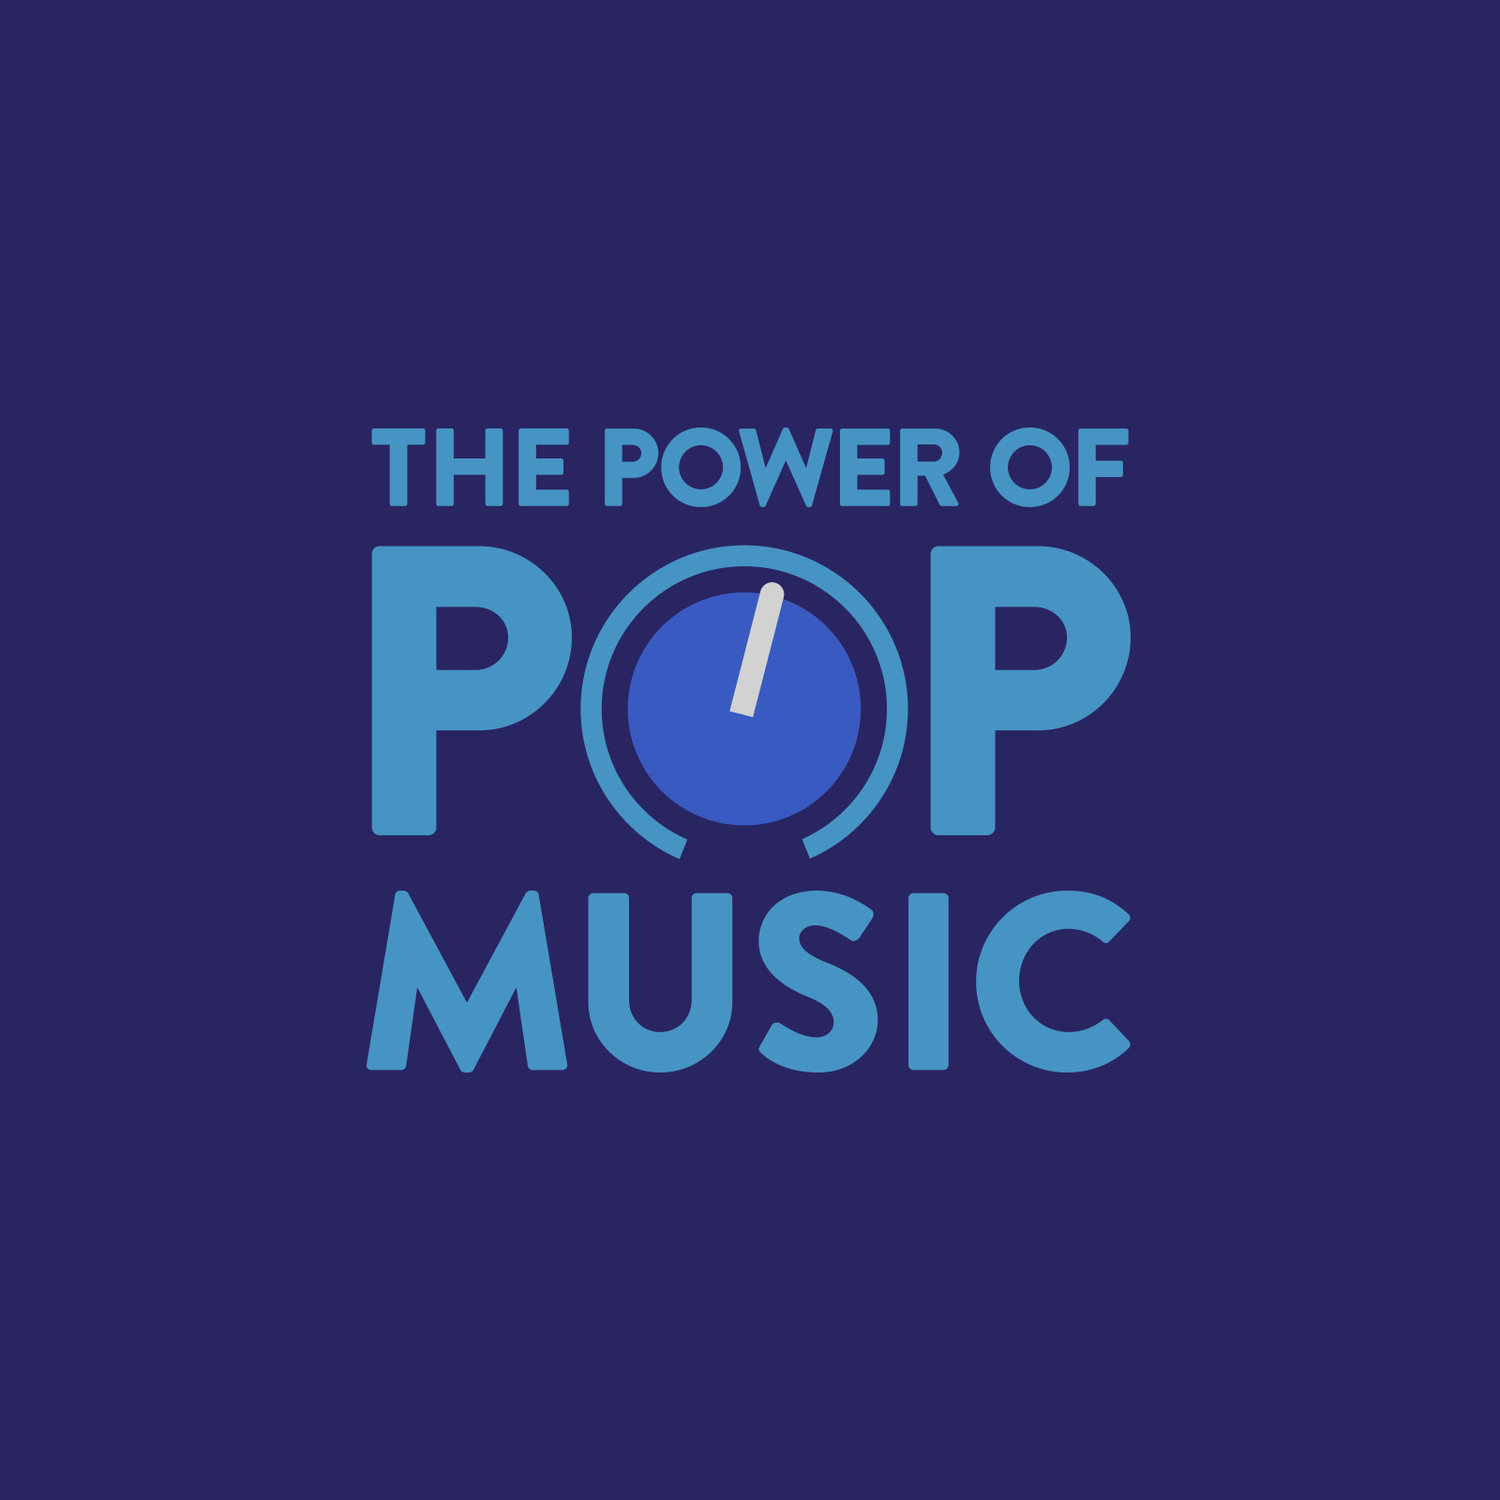 The Power of Pop Music